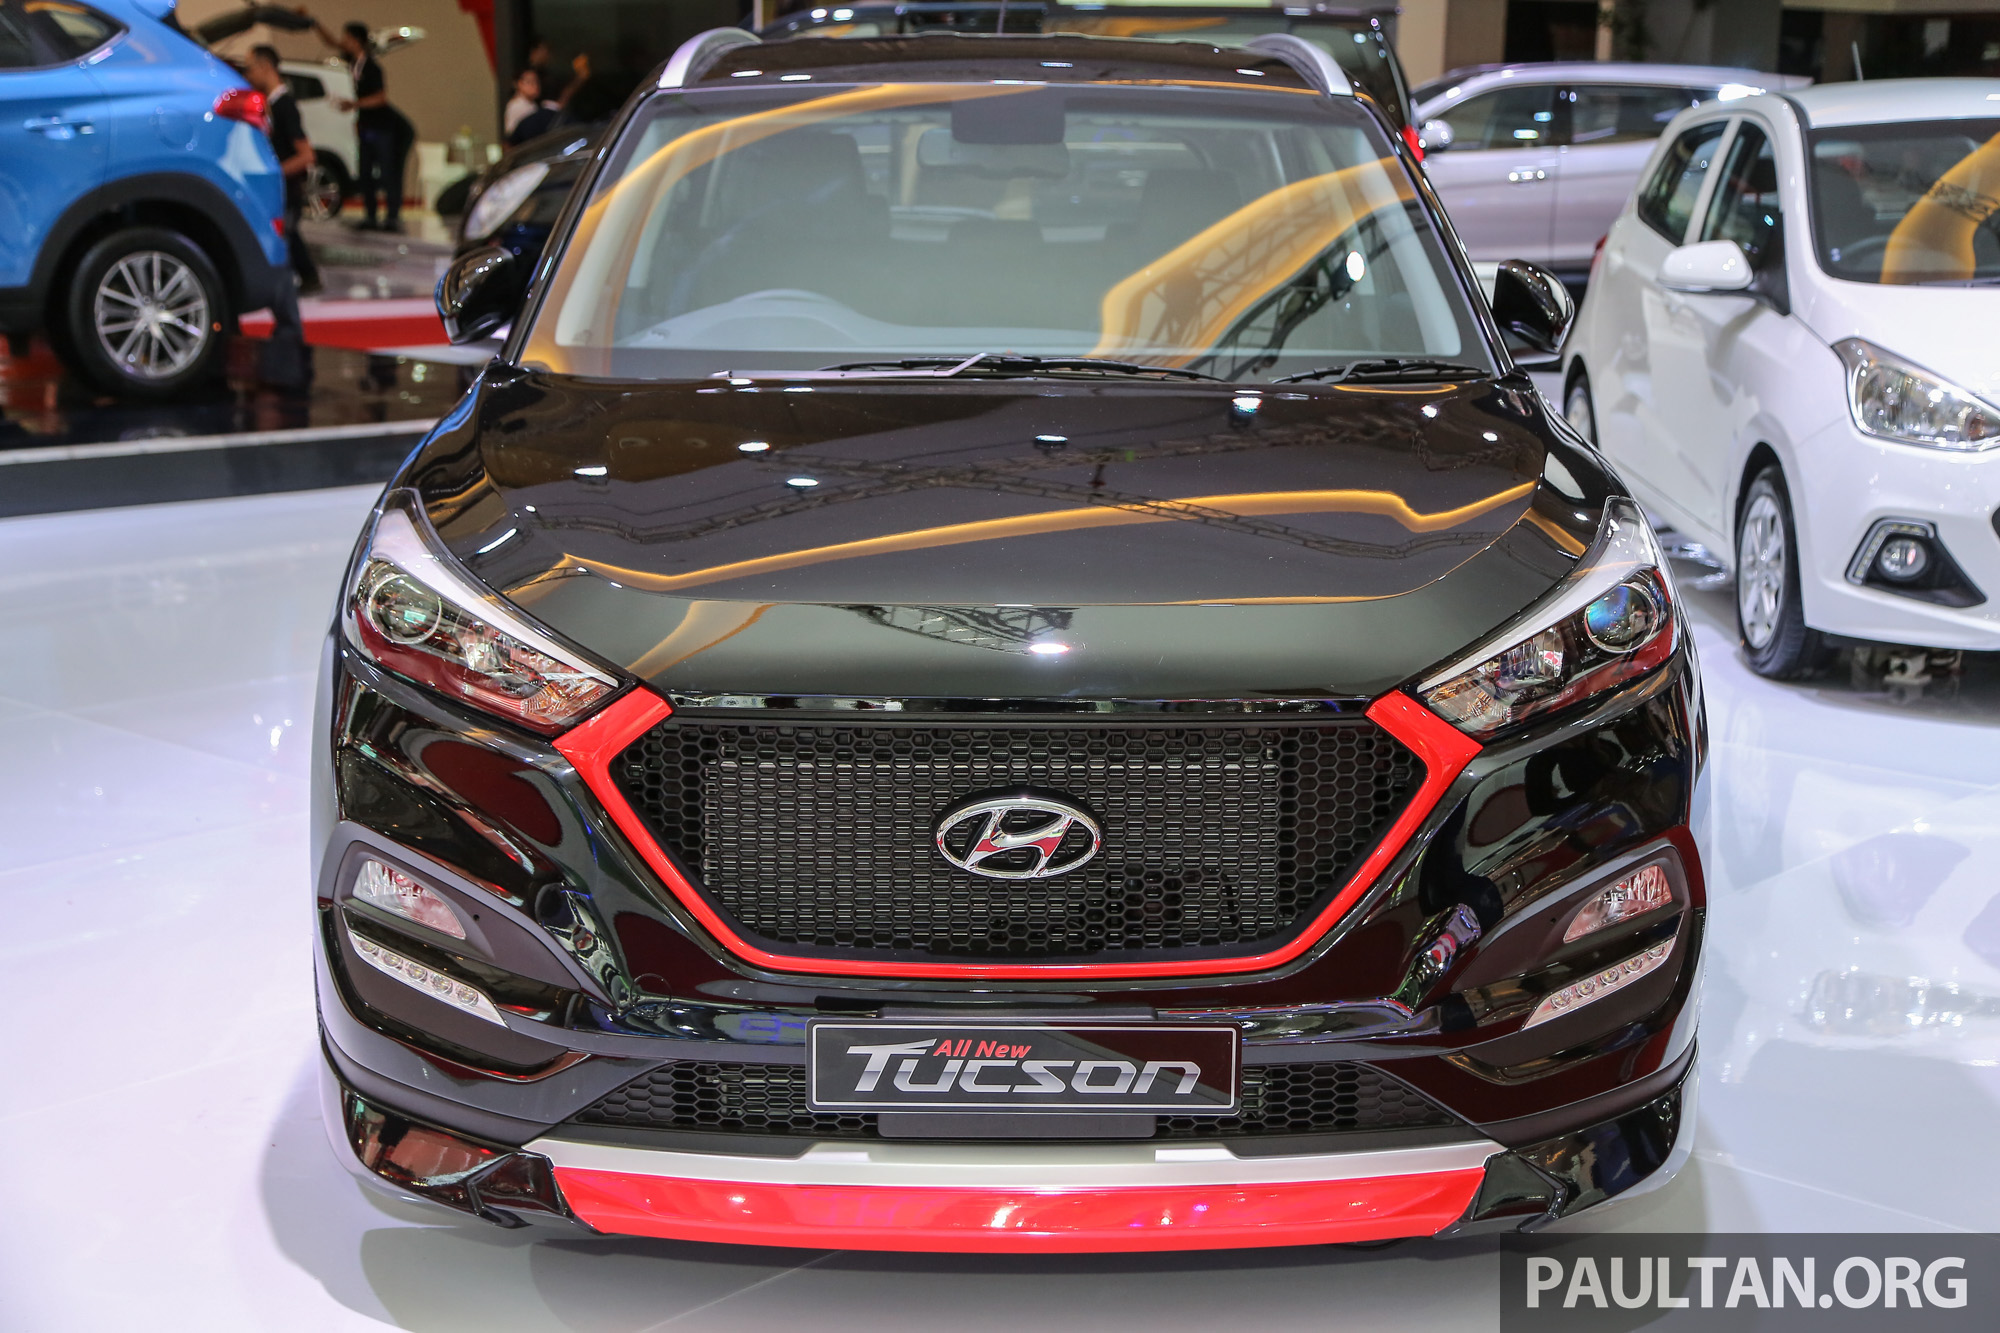 After Tax Calculator >> GALLERY: Hyundai Tucson customised at IIMS 2016